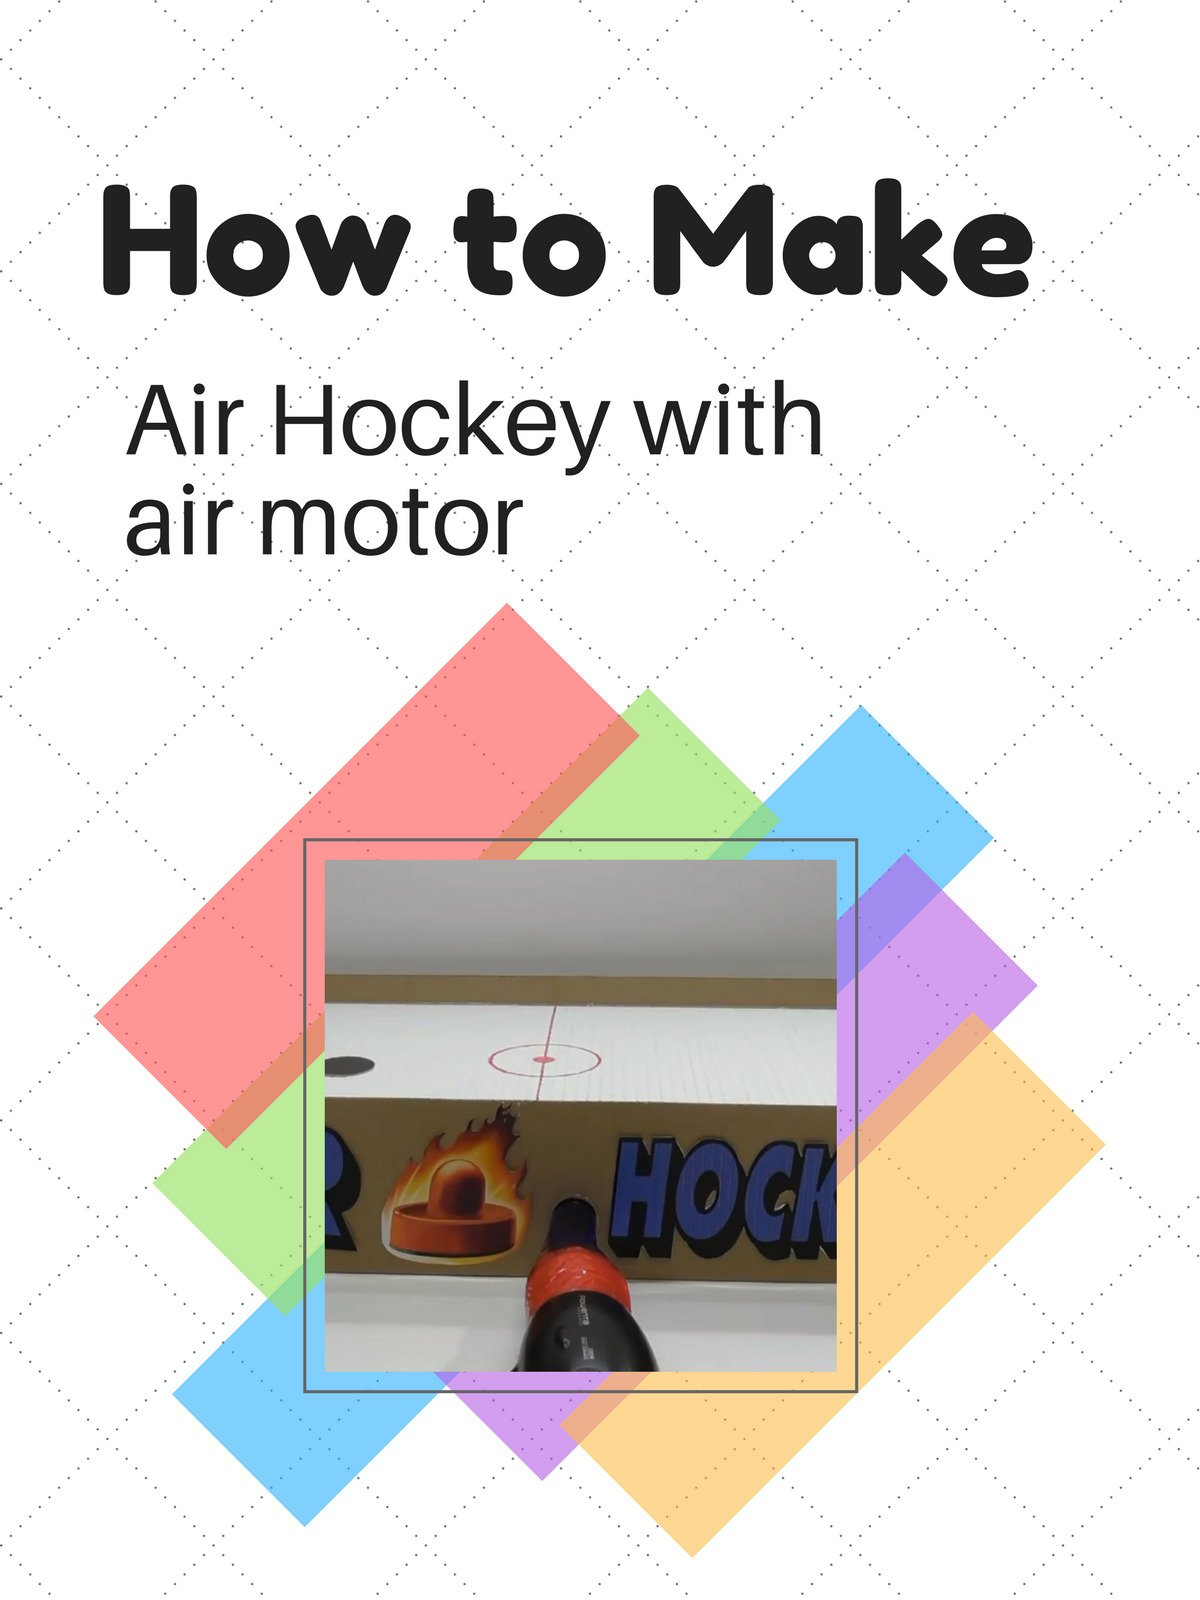 How to make Air Hockey with air motor